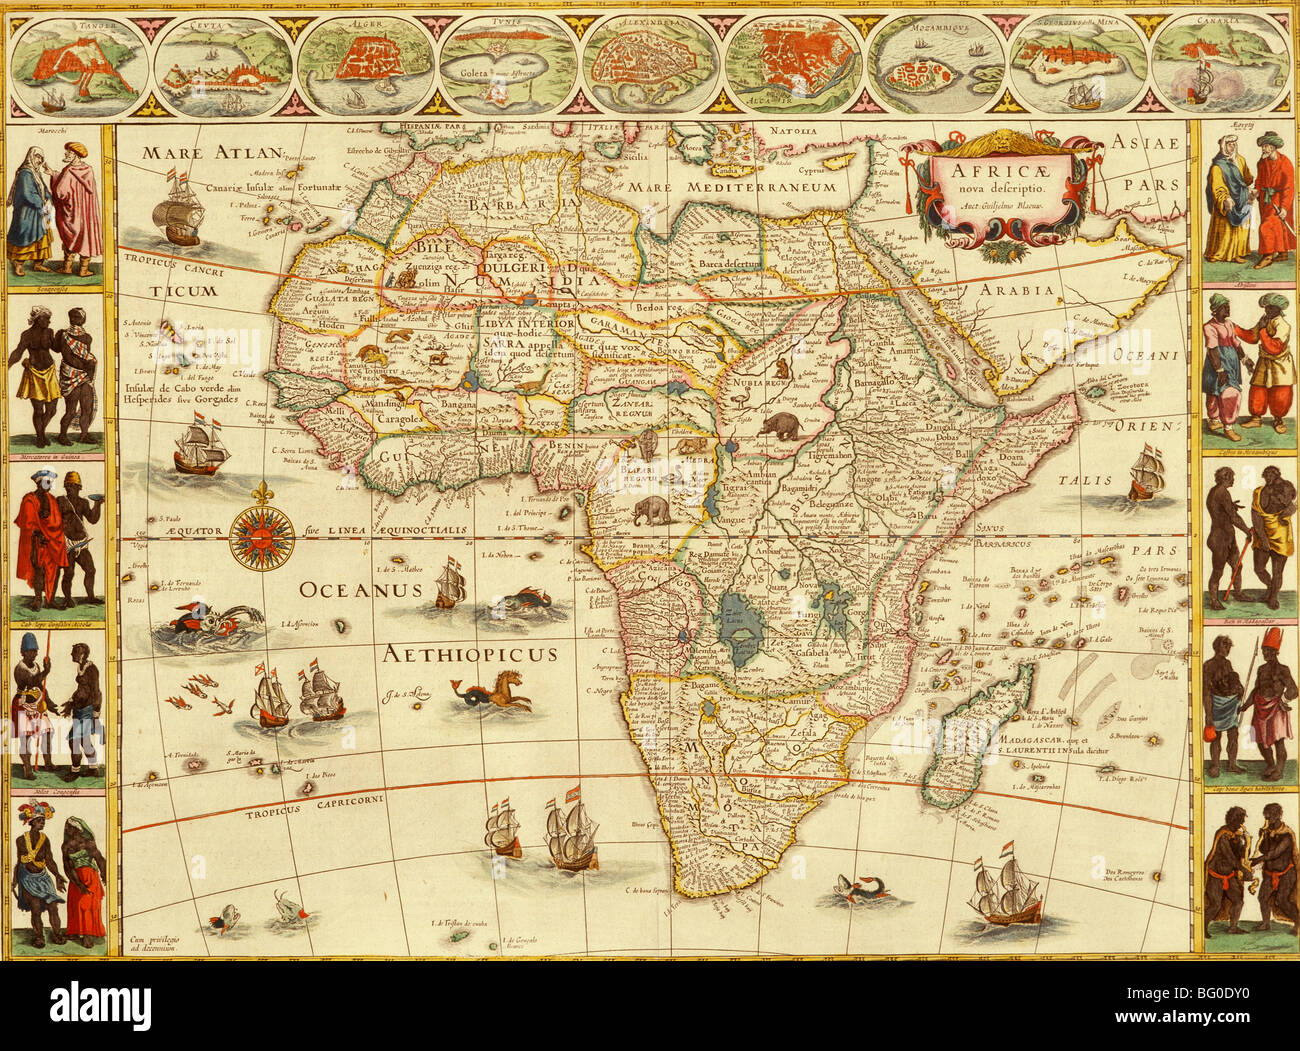 old world map of africa Old Map Of Africa High Resolution Stock Photography And Images Alamy old world map of africa